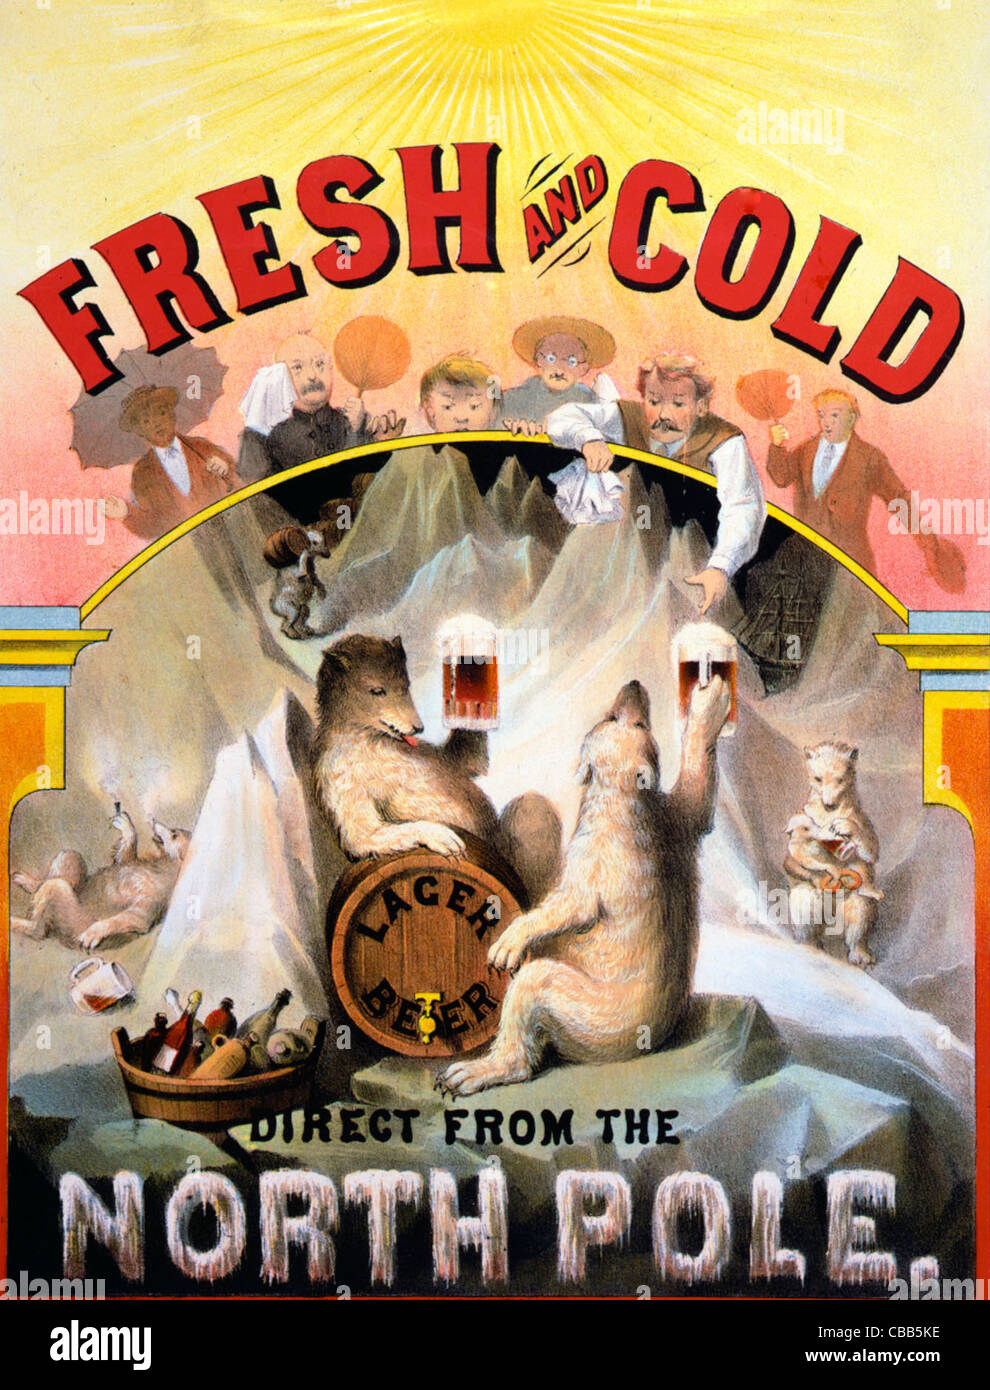 Fresh and cold - Direct from the North Pole - Lager Beer - Vintage Advertisement - Stock Image